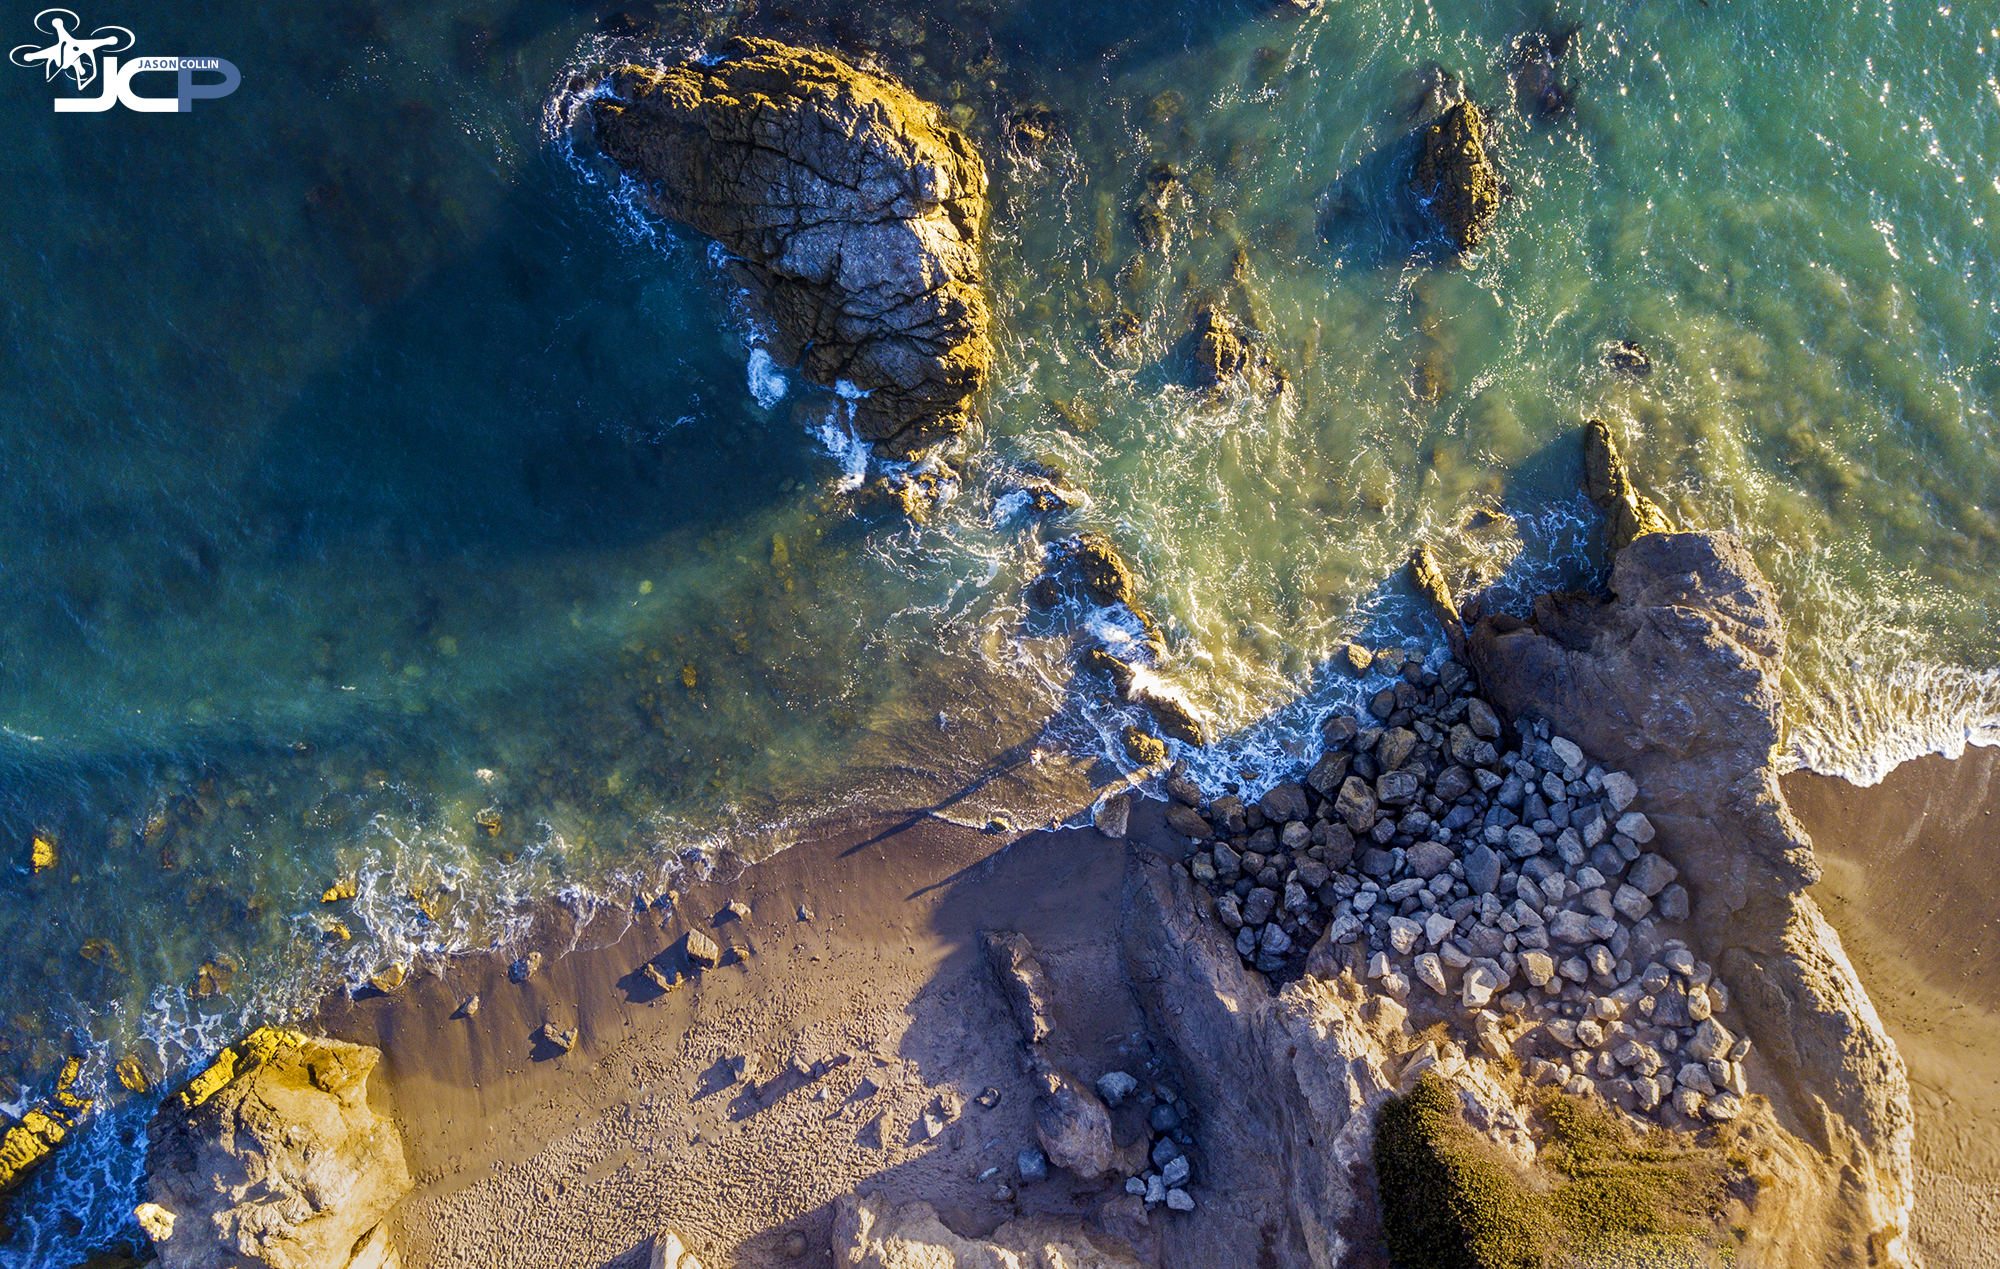 Leo Carrillo State Park in Malibu, California is ideal for drone aerial photography - made with a DJI Mavic Pro